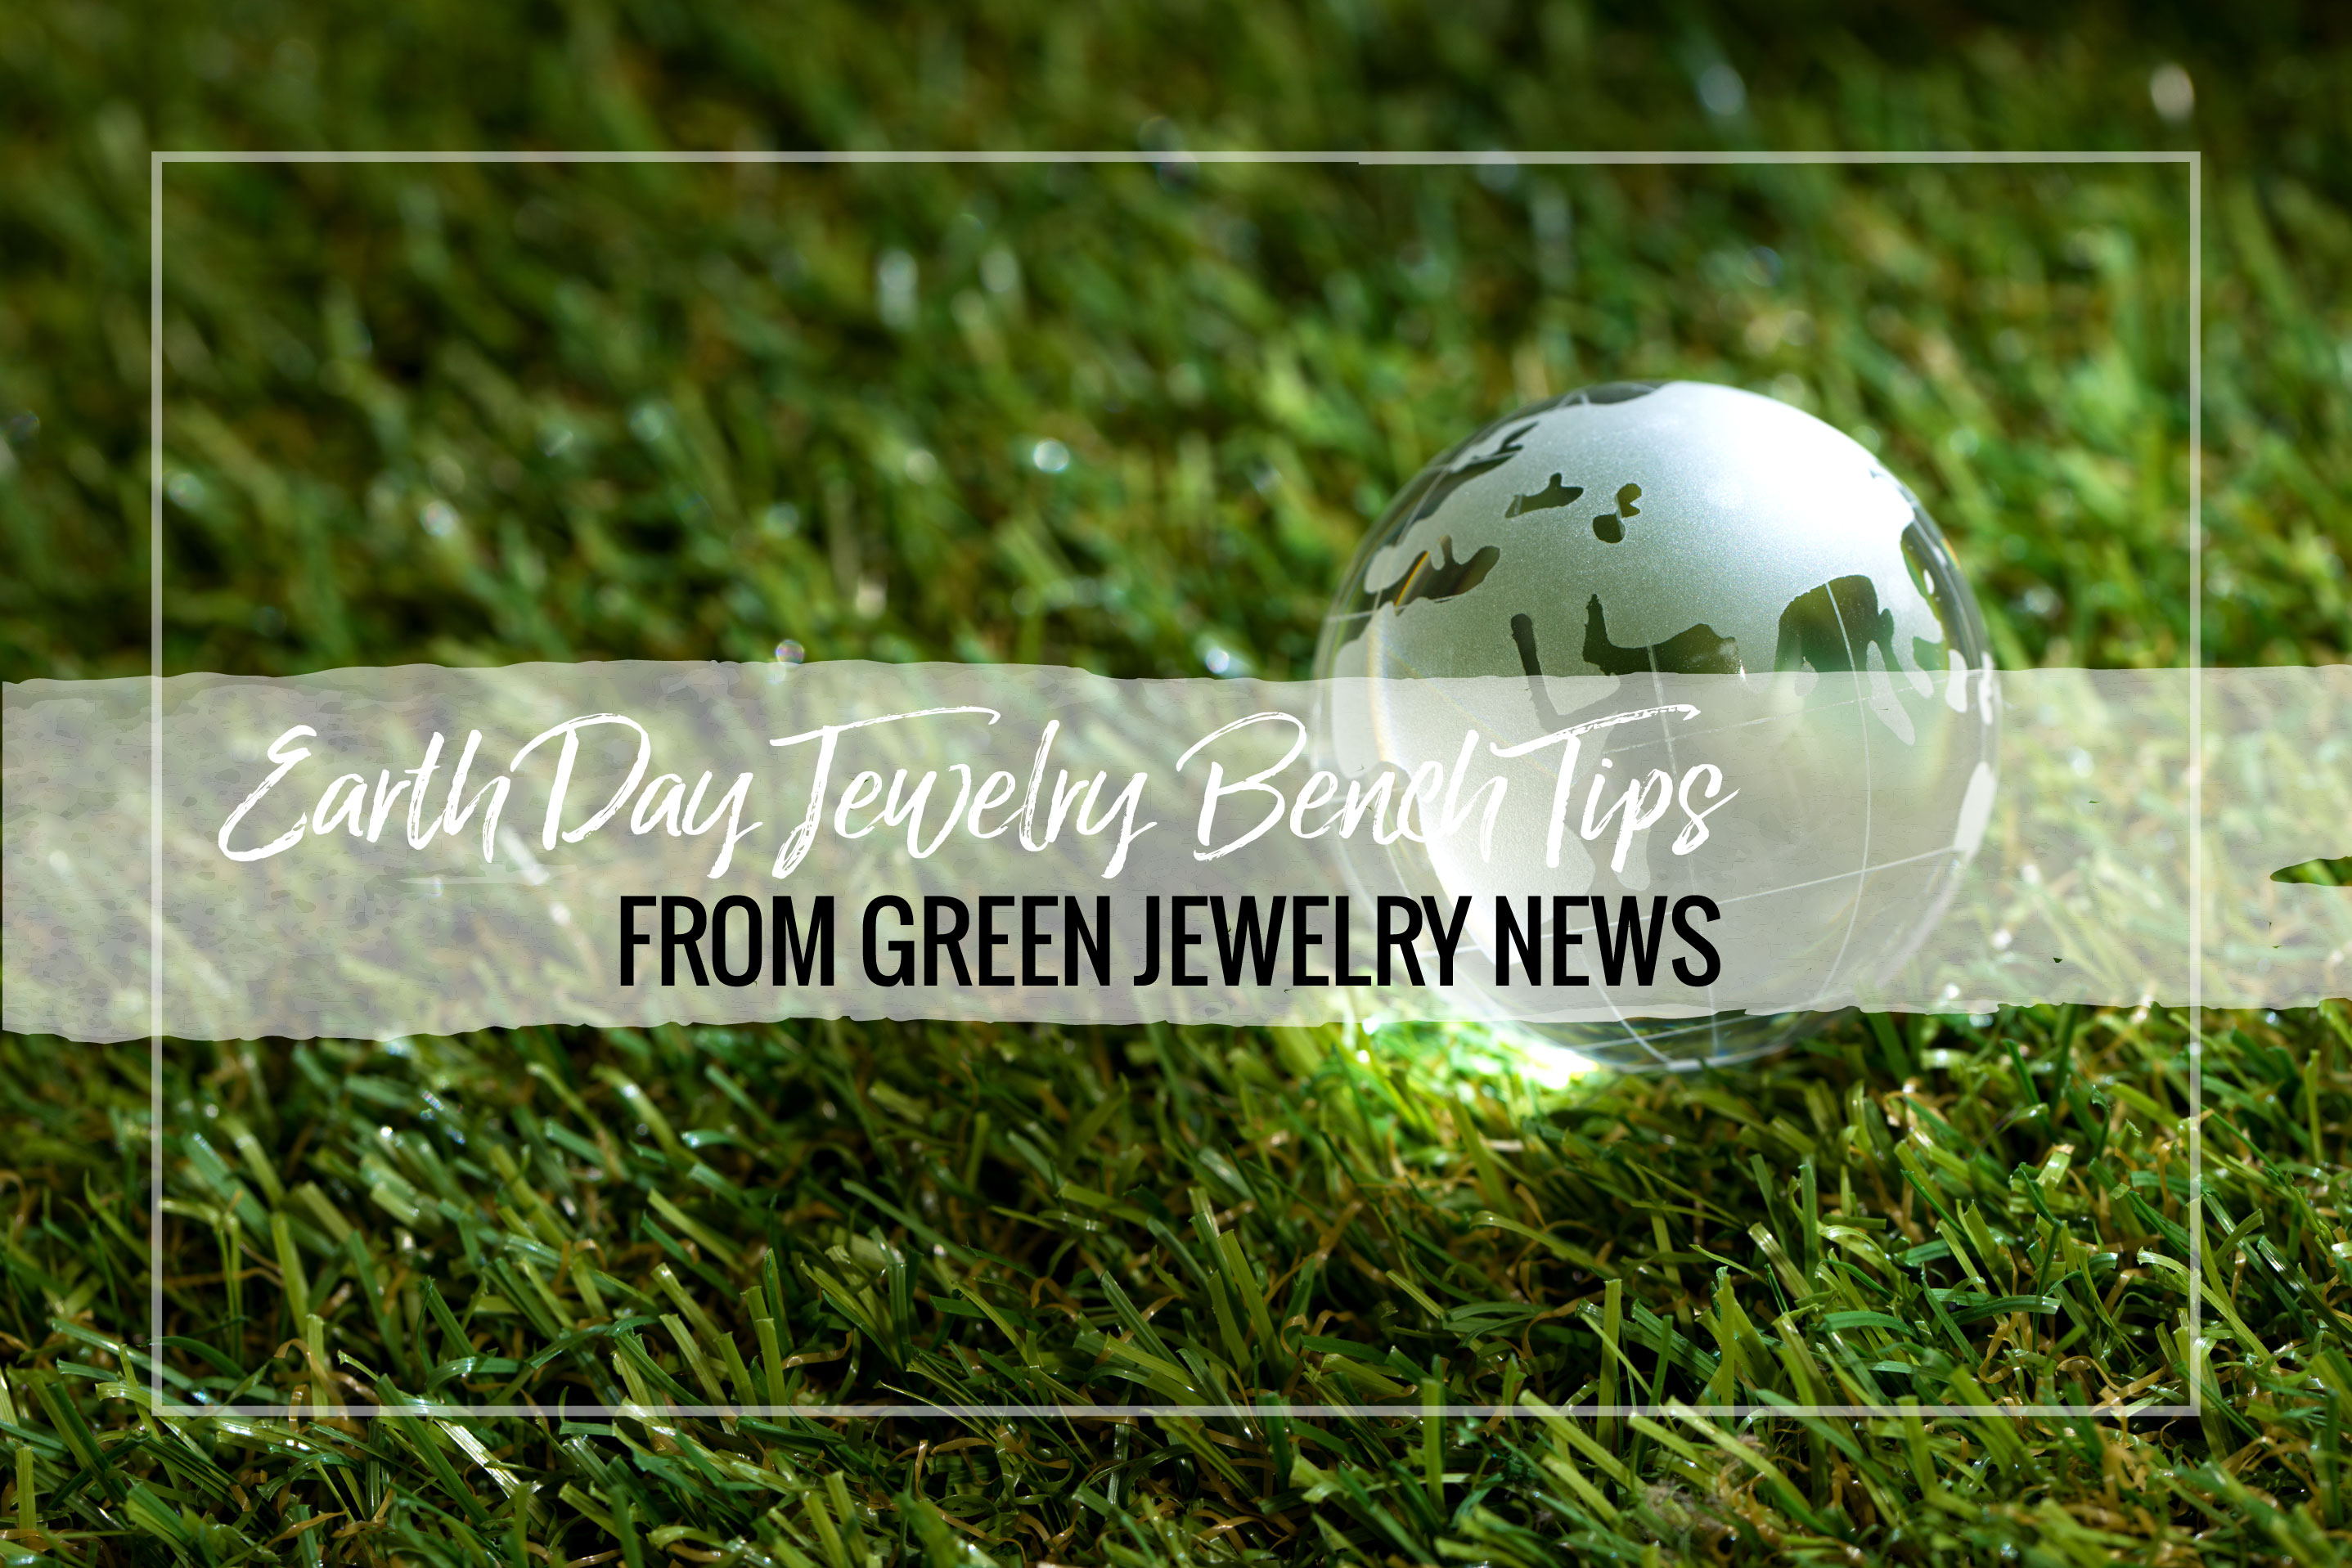 Modify your studio habits to be more earth friendly. For Earth Day, Christine Dein shares how to make your jewelry bench more environmentally safe.